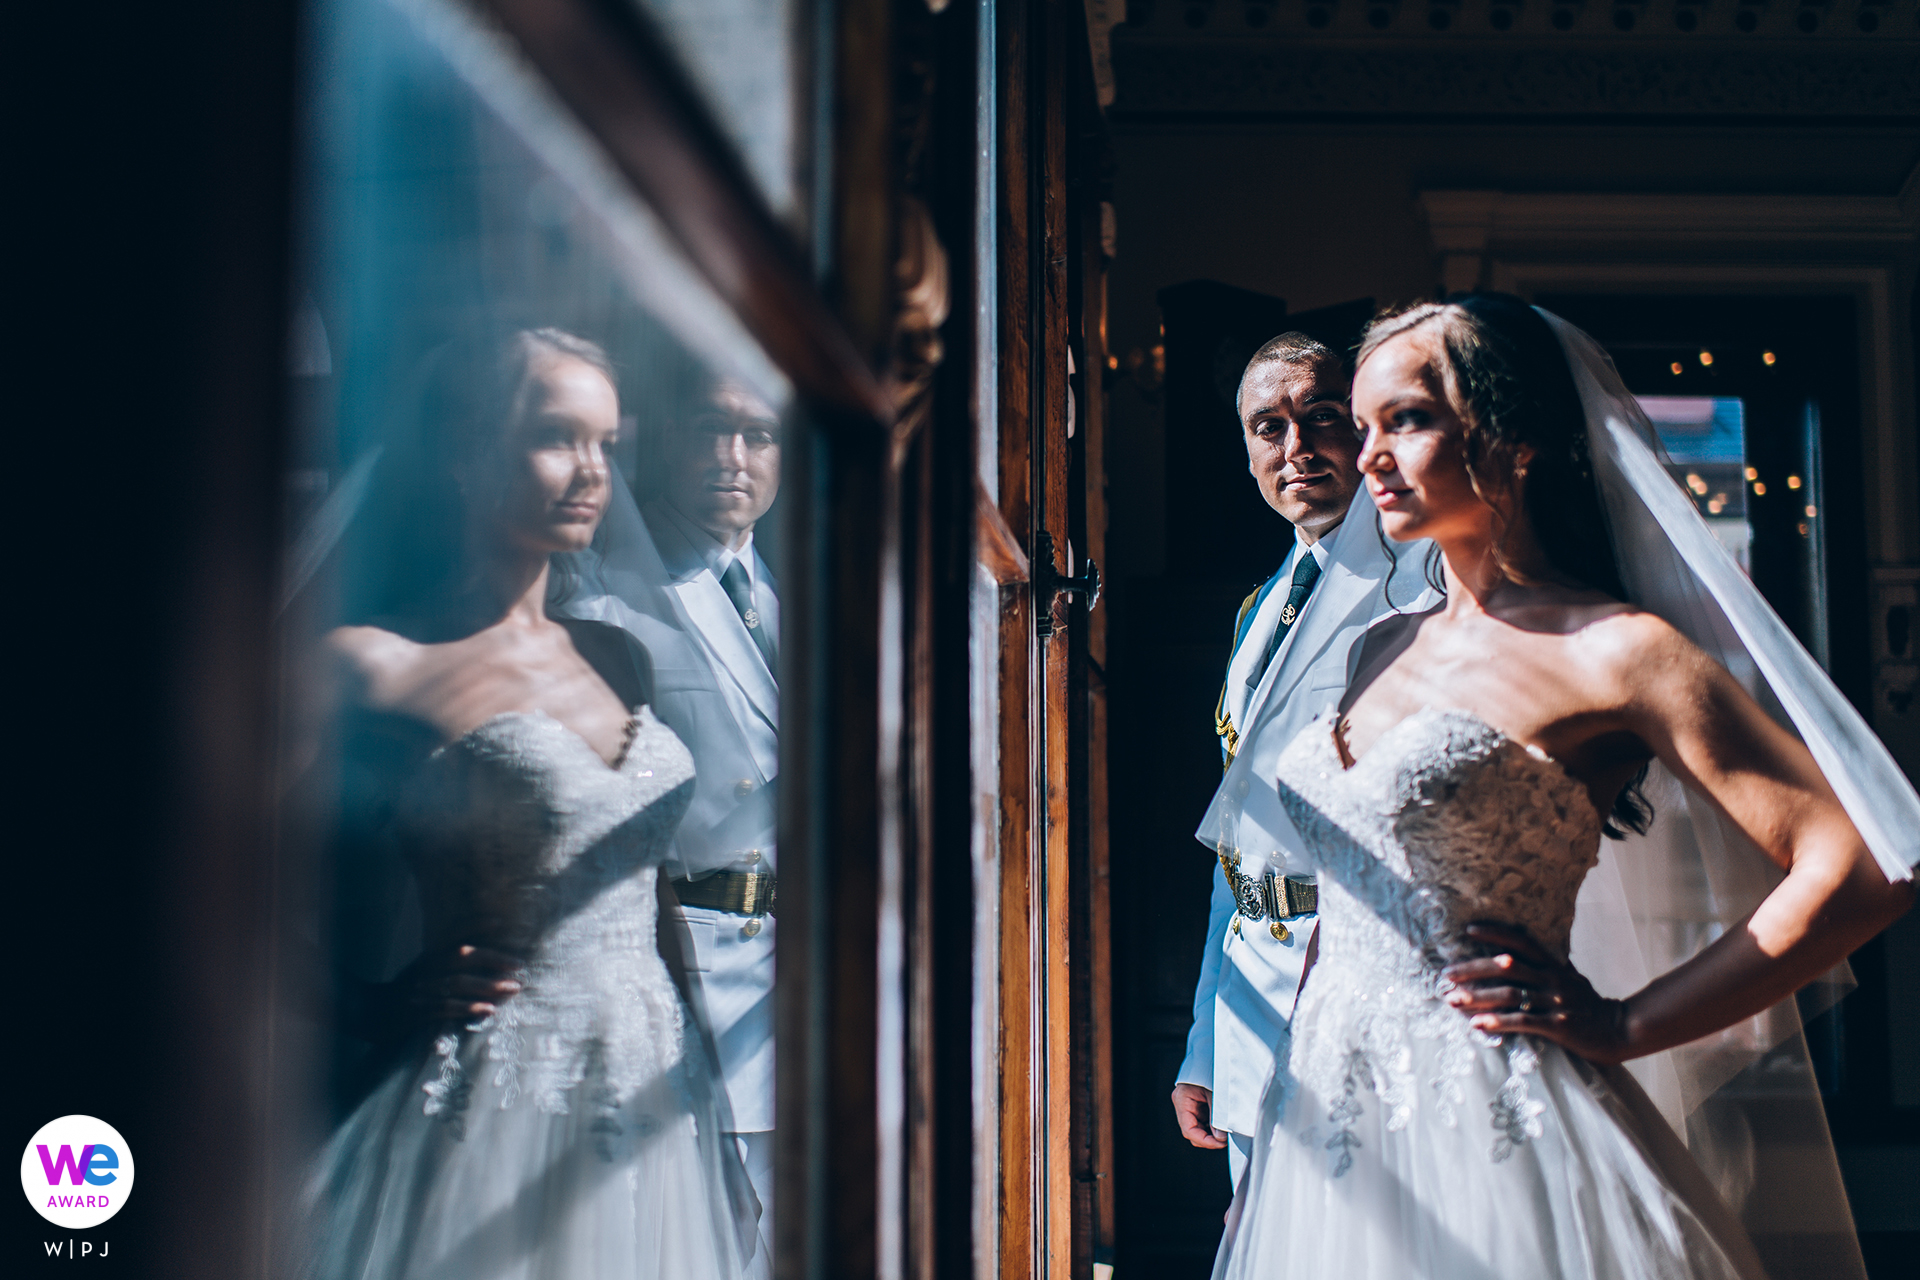 Ruse, Bulgaria Wedding Couple Portrait | The reflection in this portrait symbolizes their ability to consider the past and the challenges they overcame